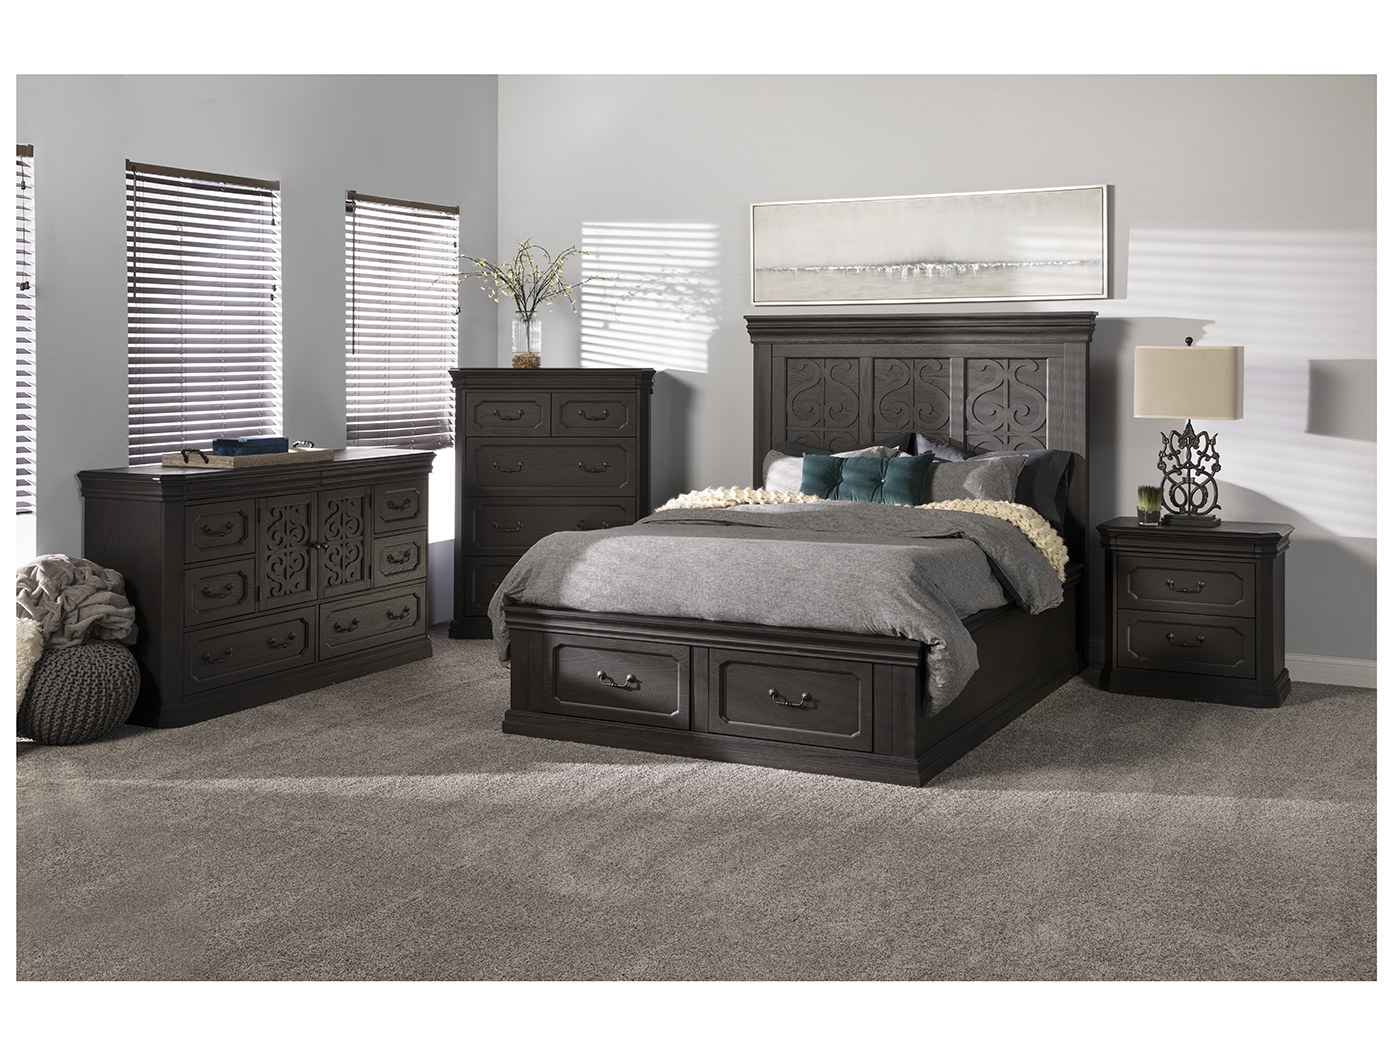 Direct Designs® Grace King Storage Bed